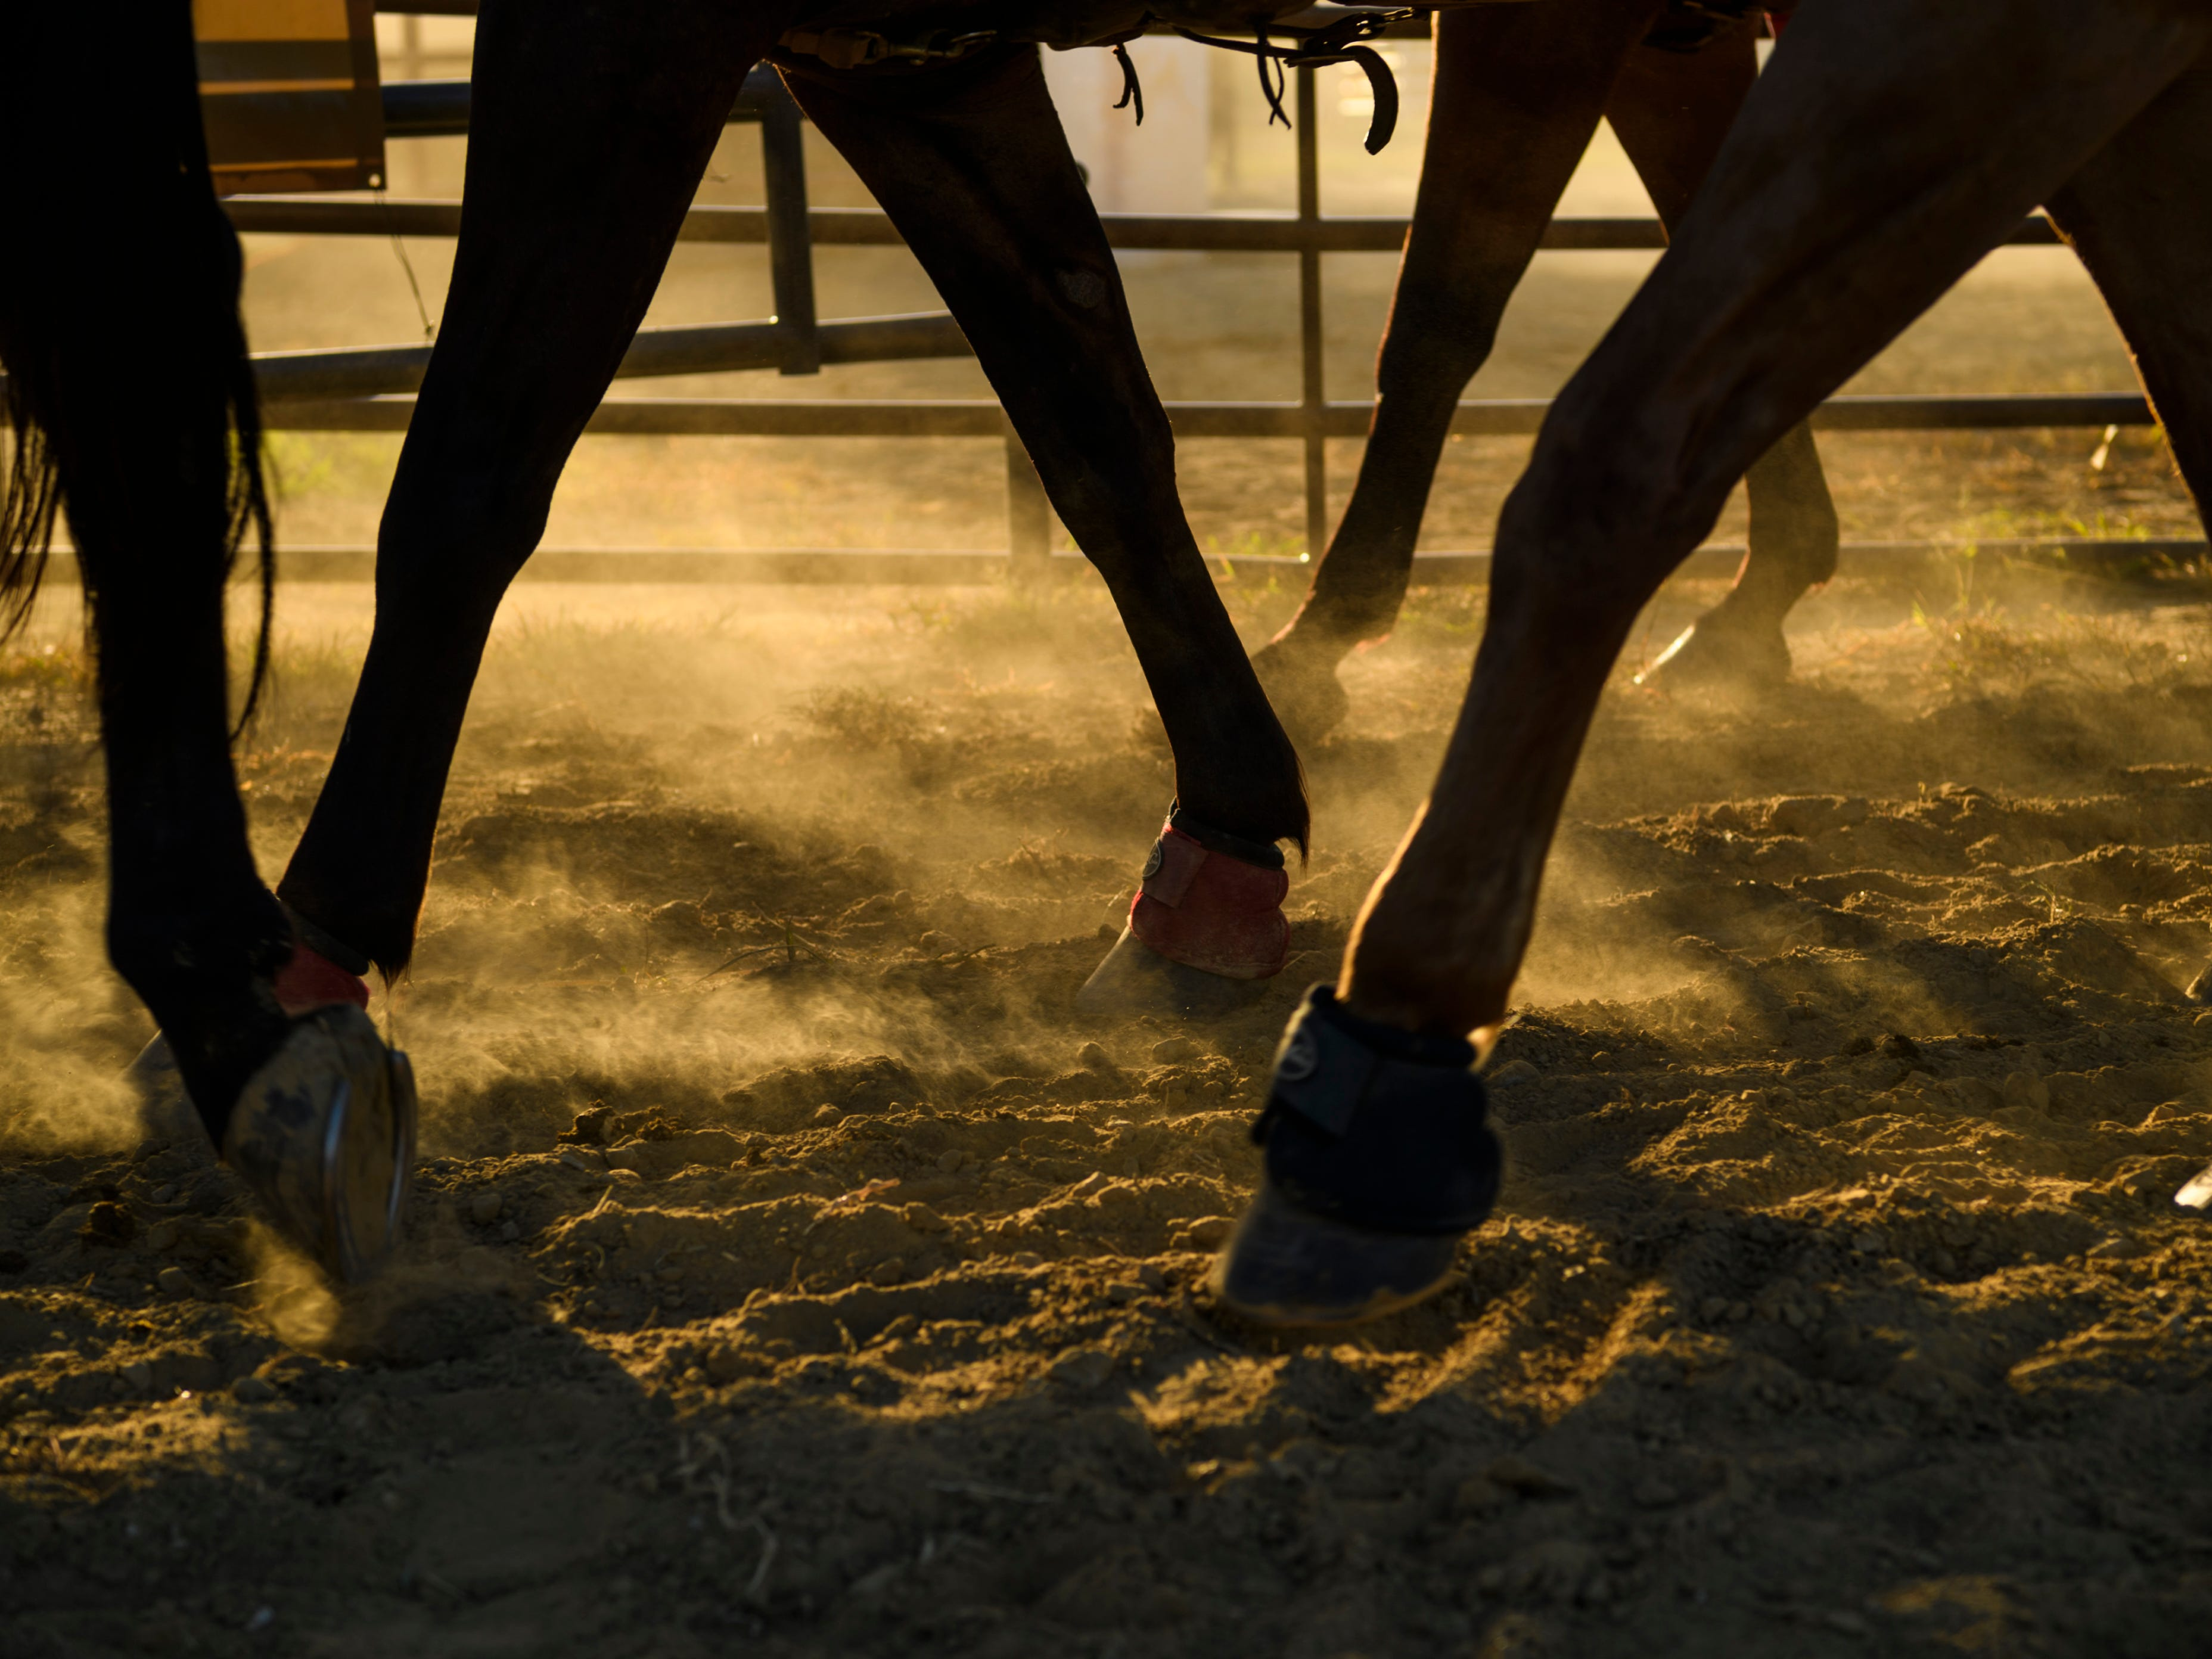 Horses tromp through the dirt as rodeo competitors slowly walk them into the ring for the singing of the national anthem to kick-off the rodeo at the Henderson County Fairgrounds in Kentucky, Saturday, July 7, 2018.